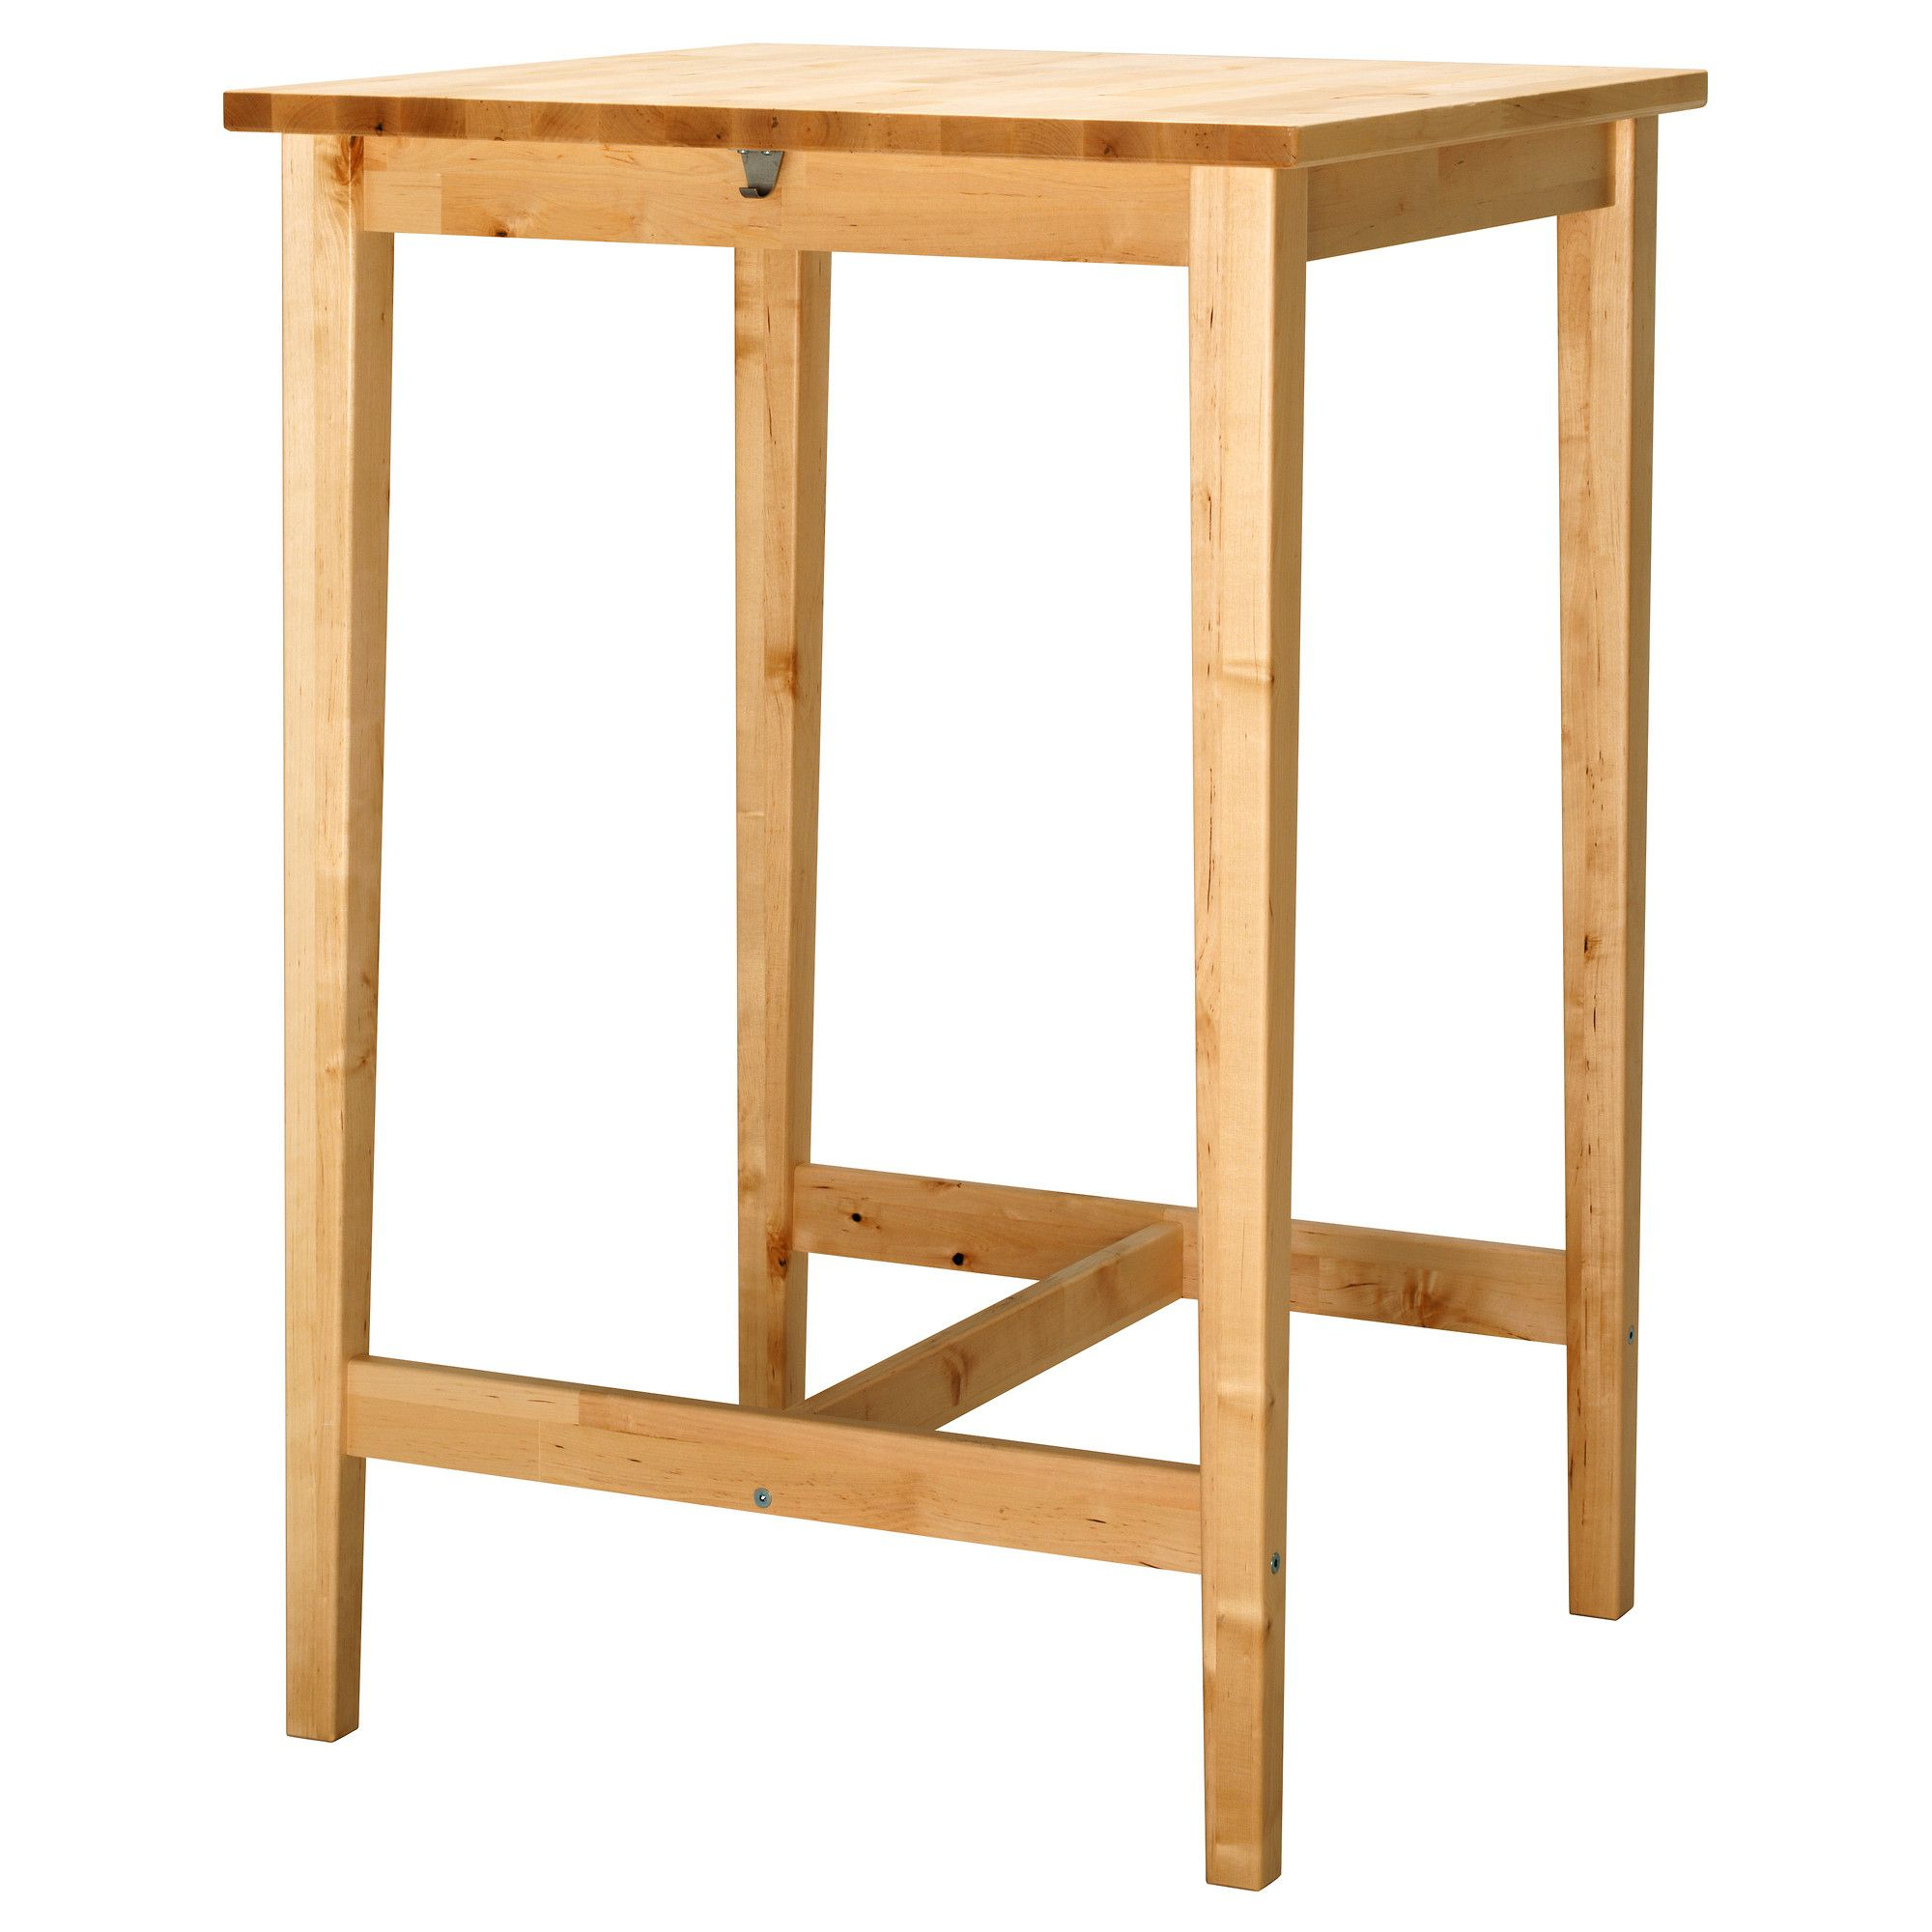 Bj 214 Rkudden Bar Table Ikea Three Of These Would Fit